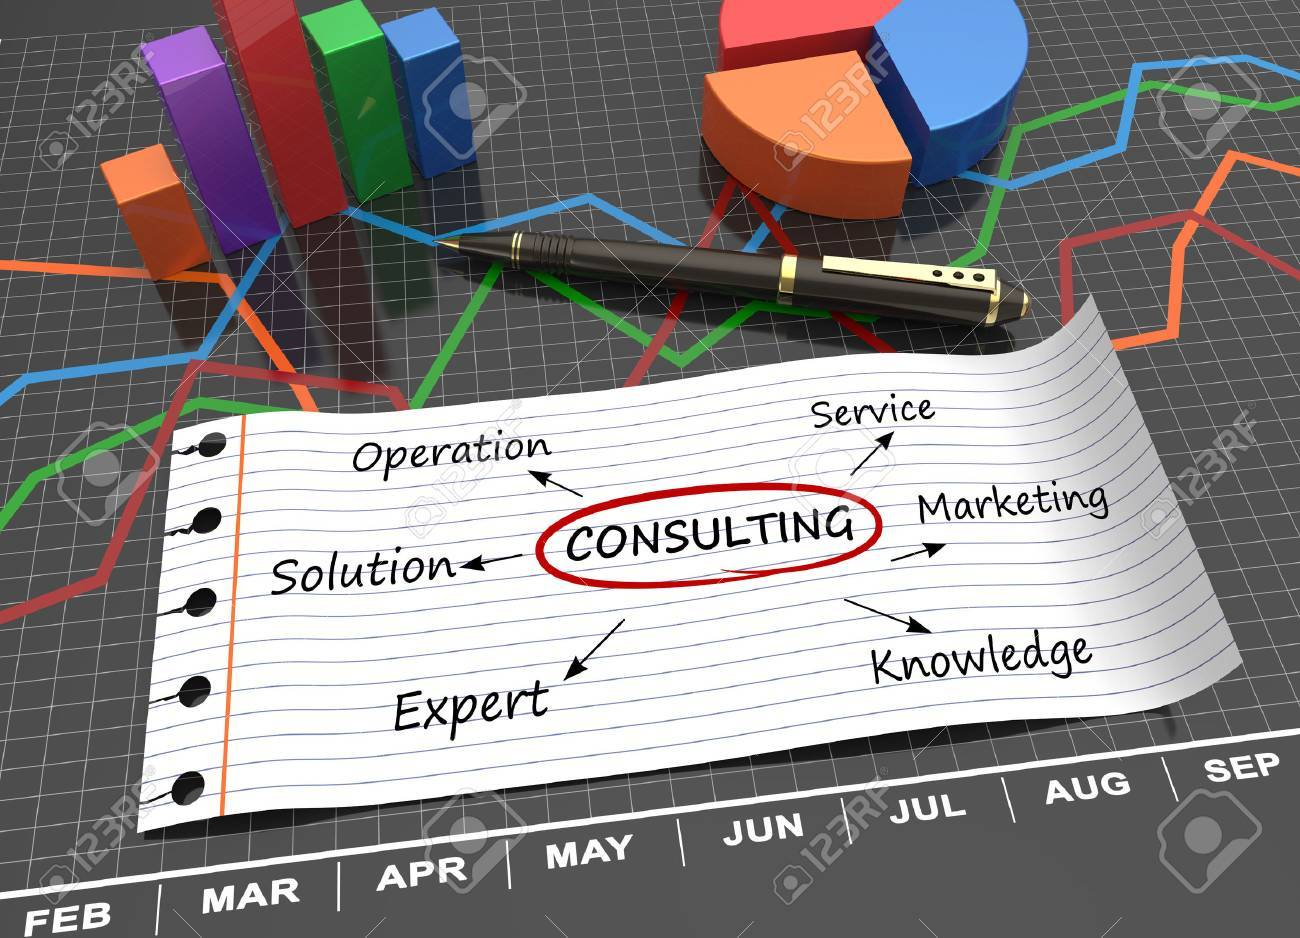 Consulting word written on lined paper as a concept - 30505070